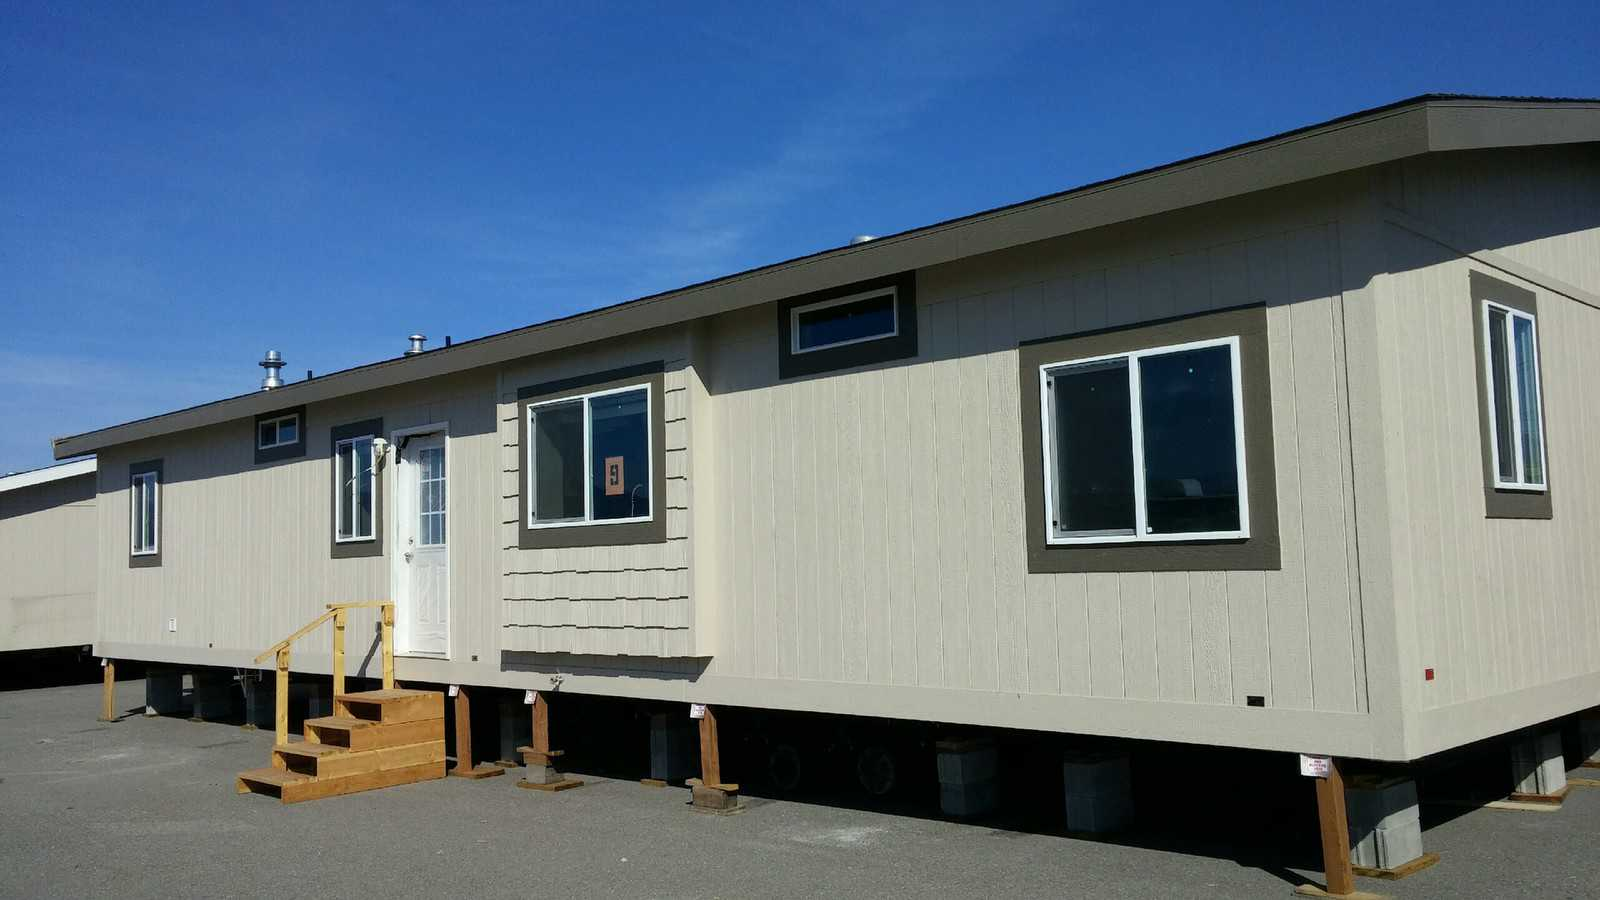 NEW 2018 SPECIAL BUILD MARLETTE 2 BEDROOM OPEN KITCHEN MANY UPGRADES - Rangitsch Manufactured Home Center